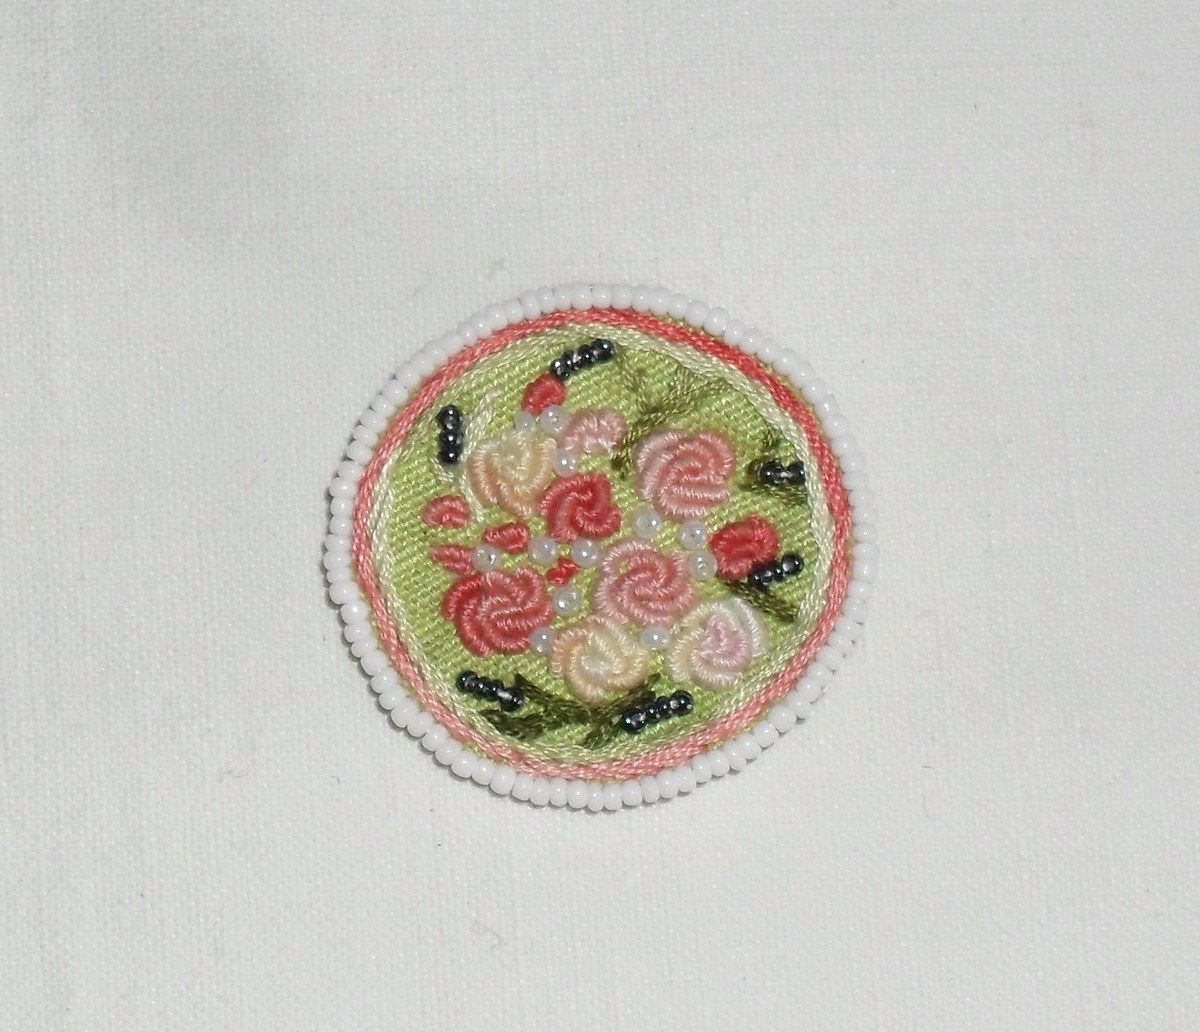 Bijoux fait main  hand-embroidery brooch